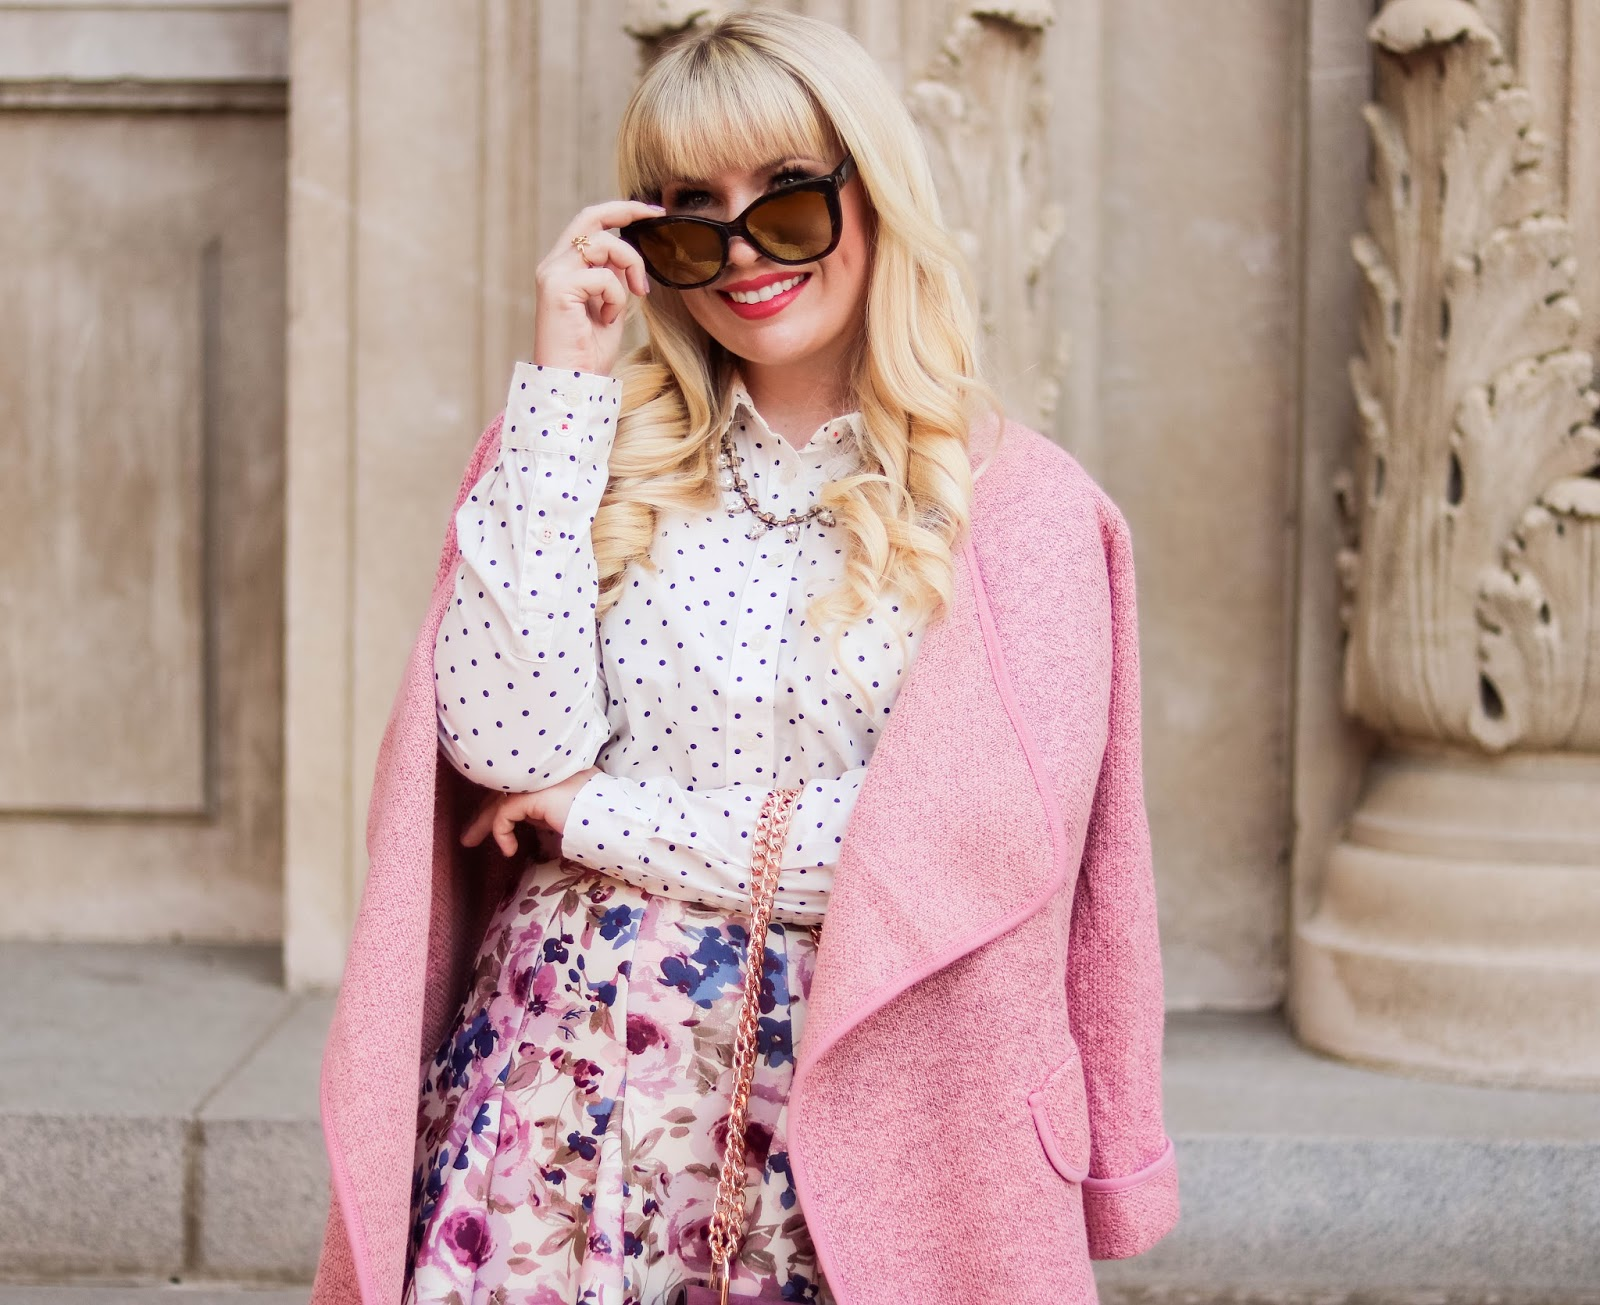 popular California style blogger Lizzie in Lace